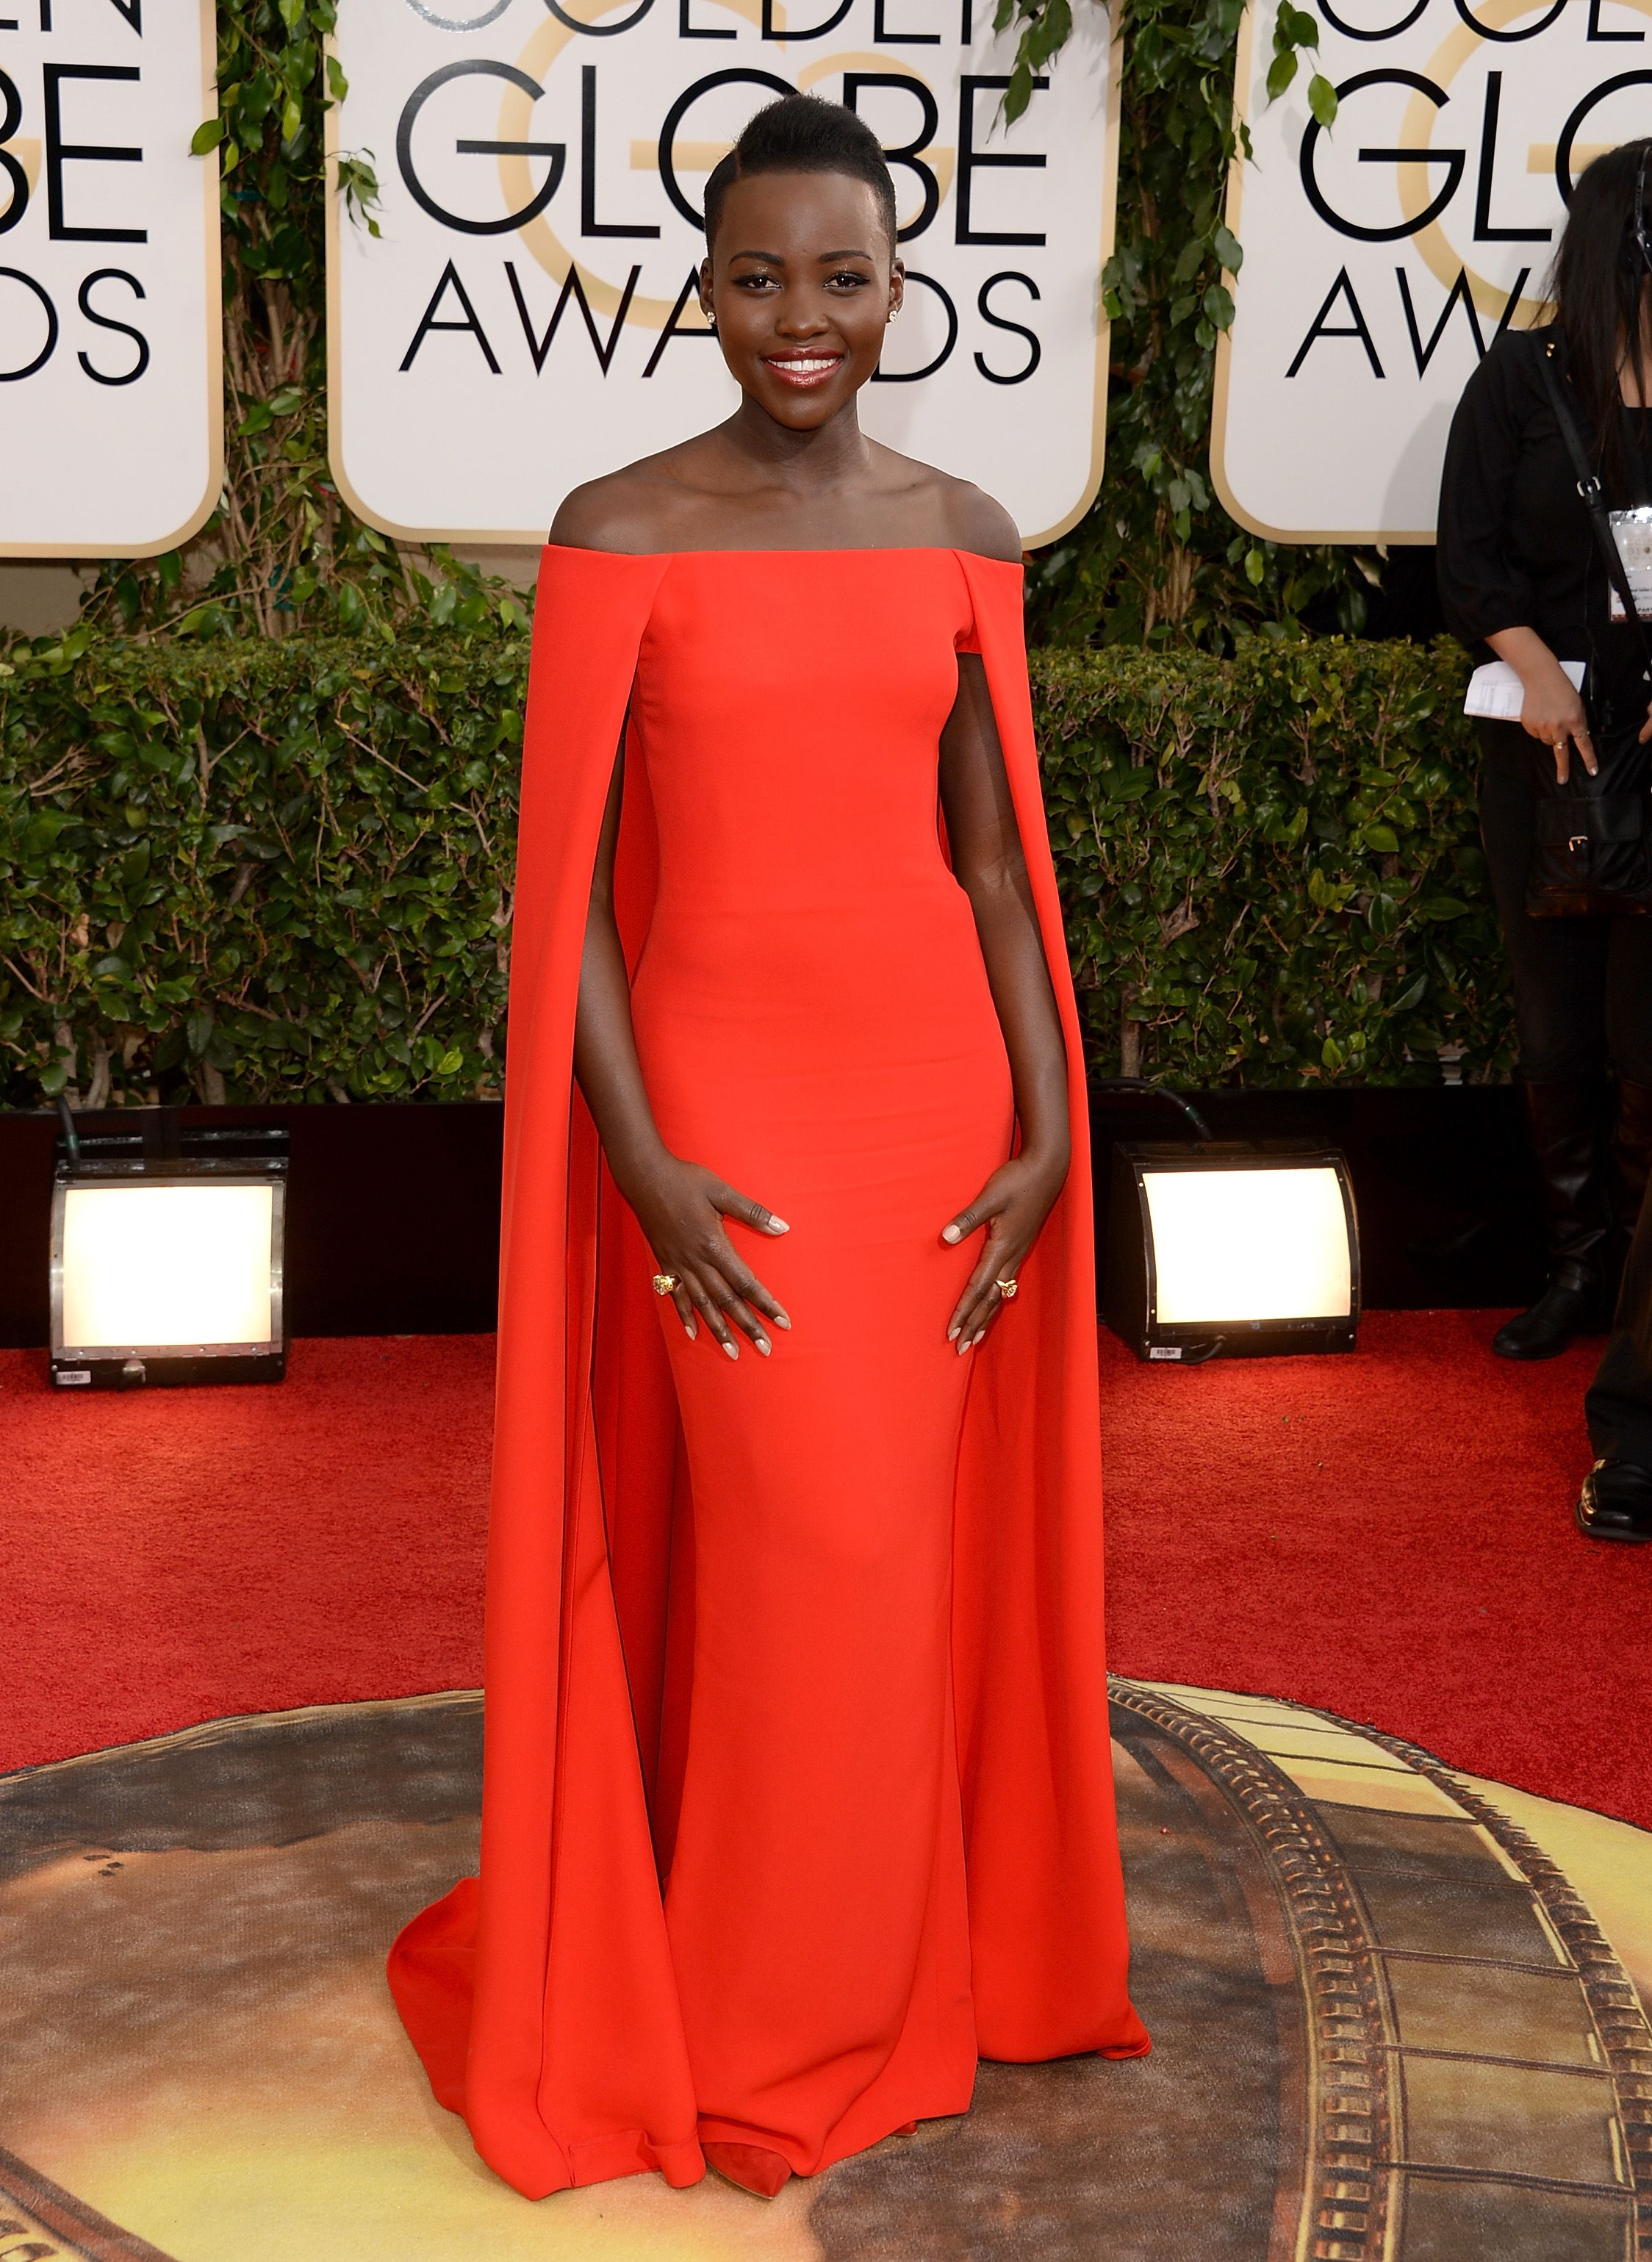 The 30 Dresses That Put These Hollywood Stars on the Map